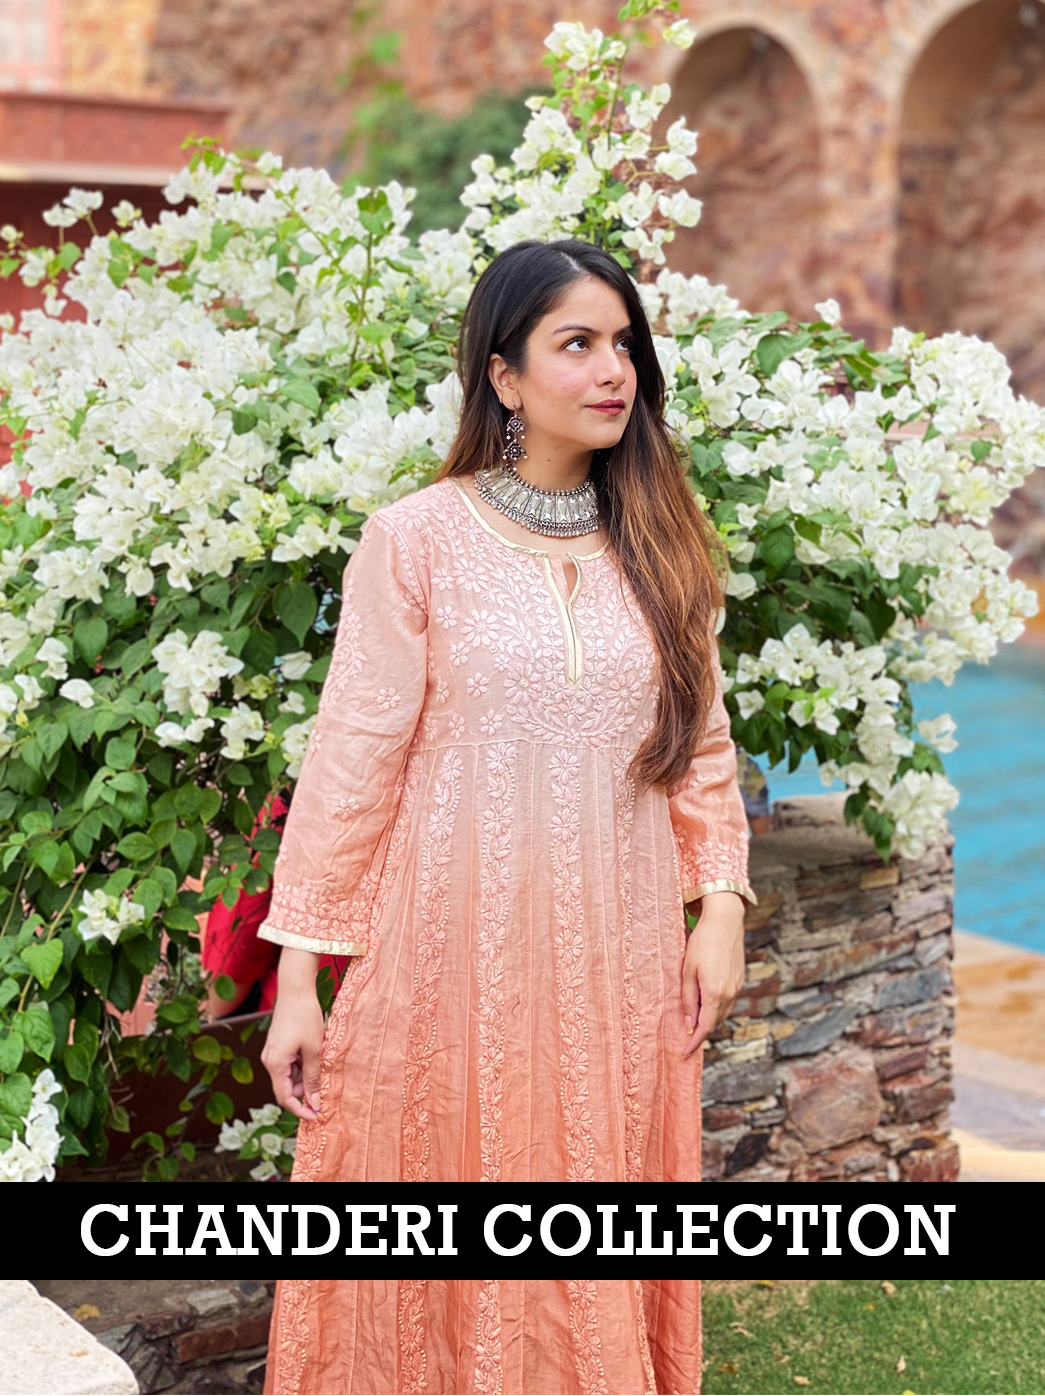 CHANDERI COLLECTION